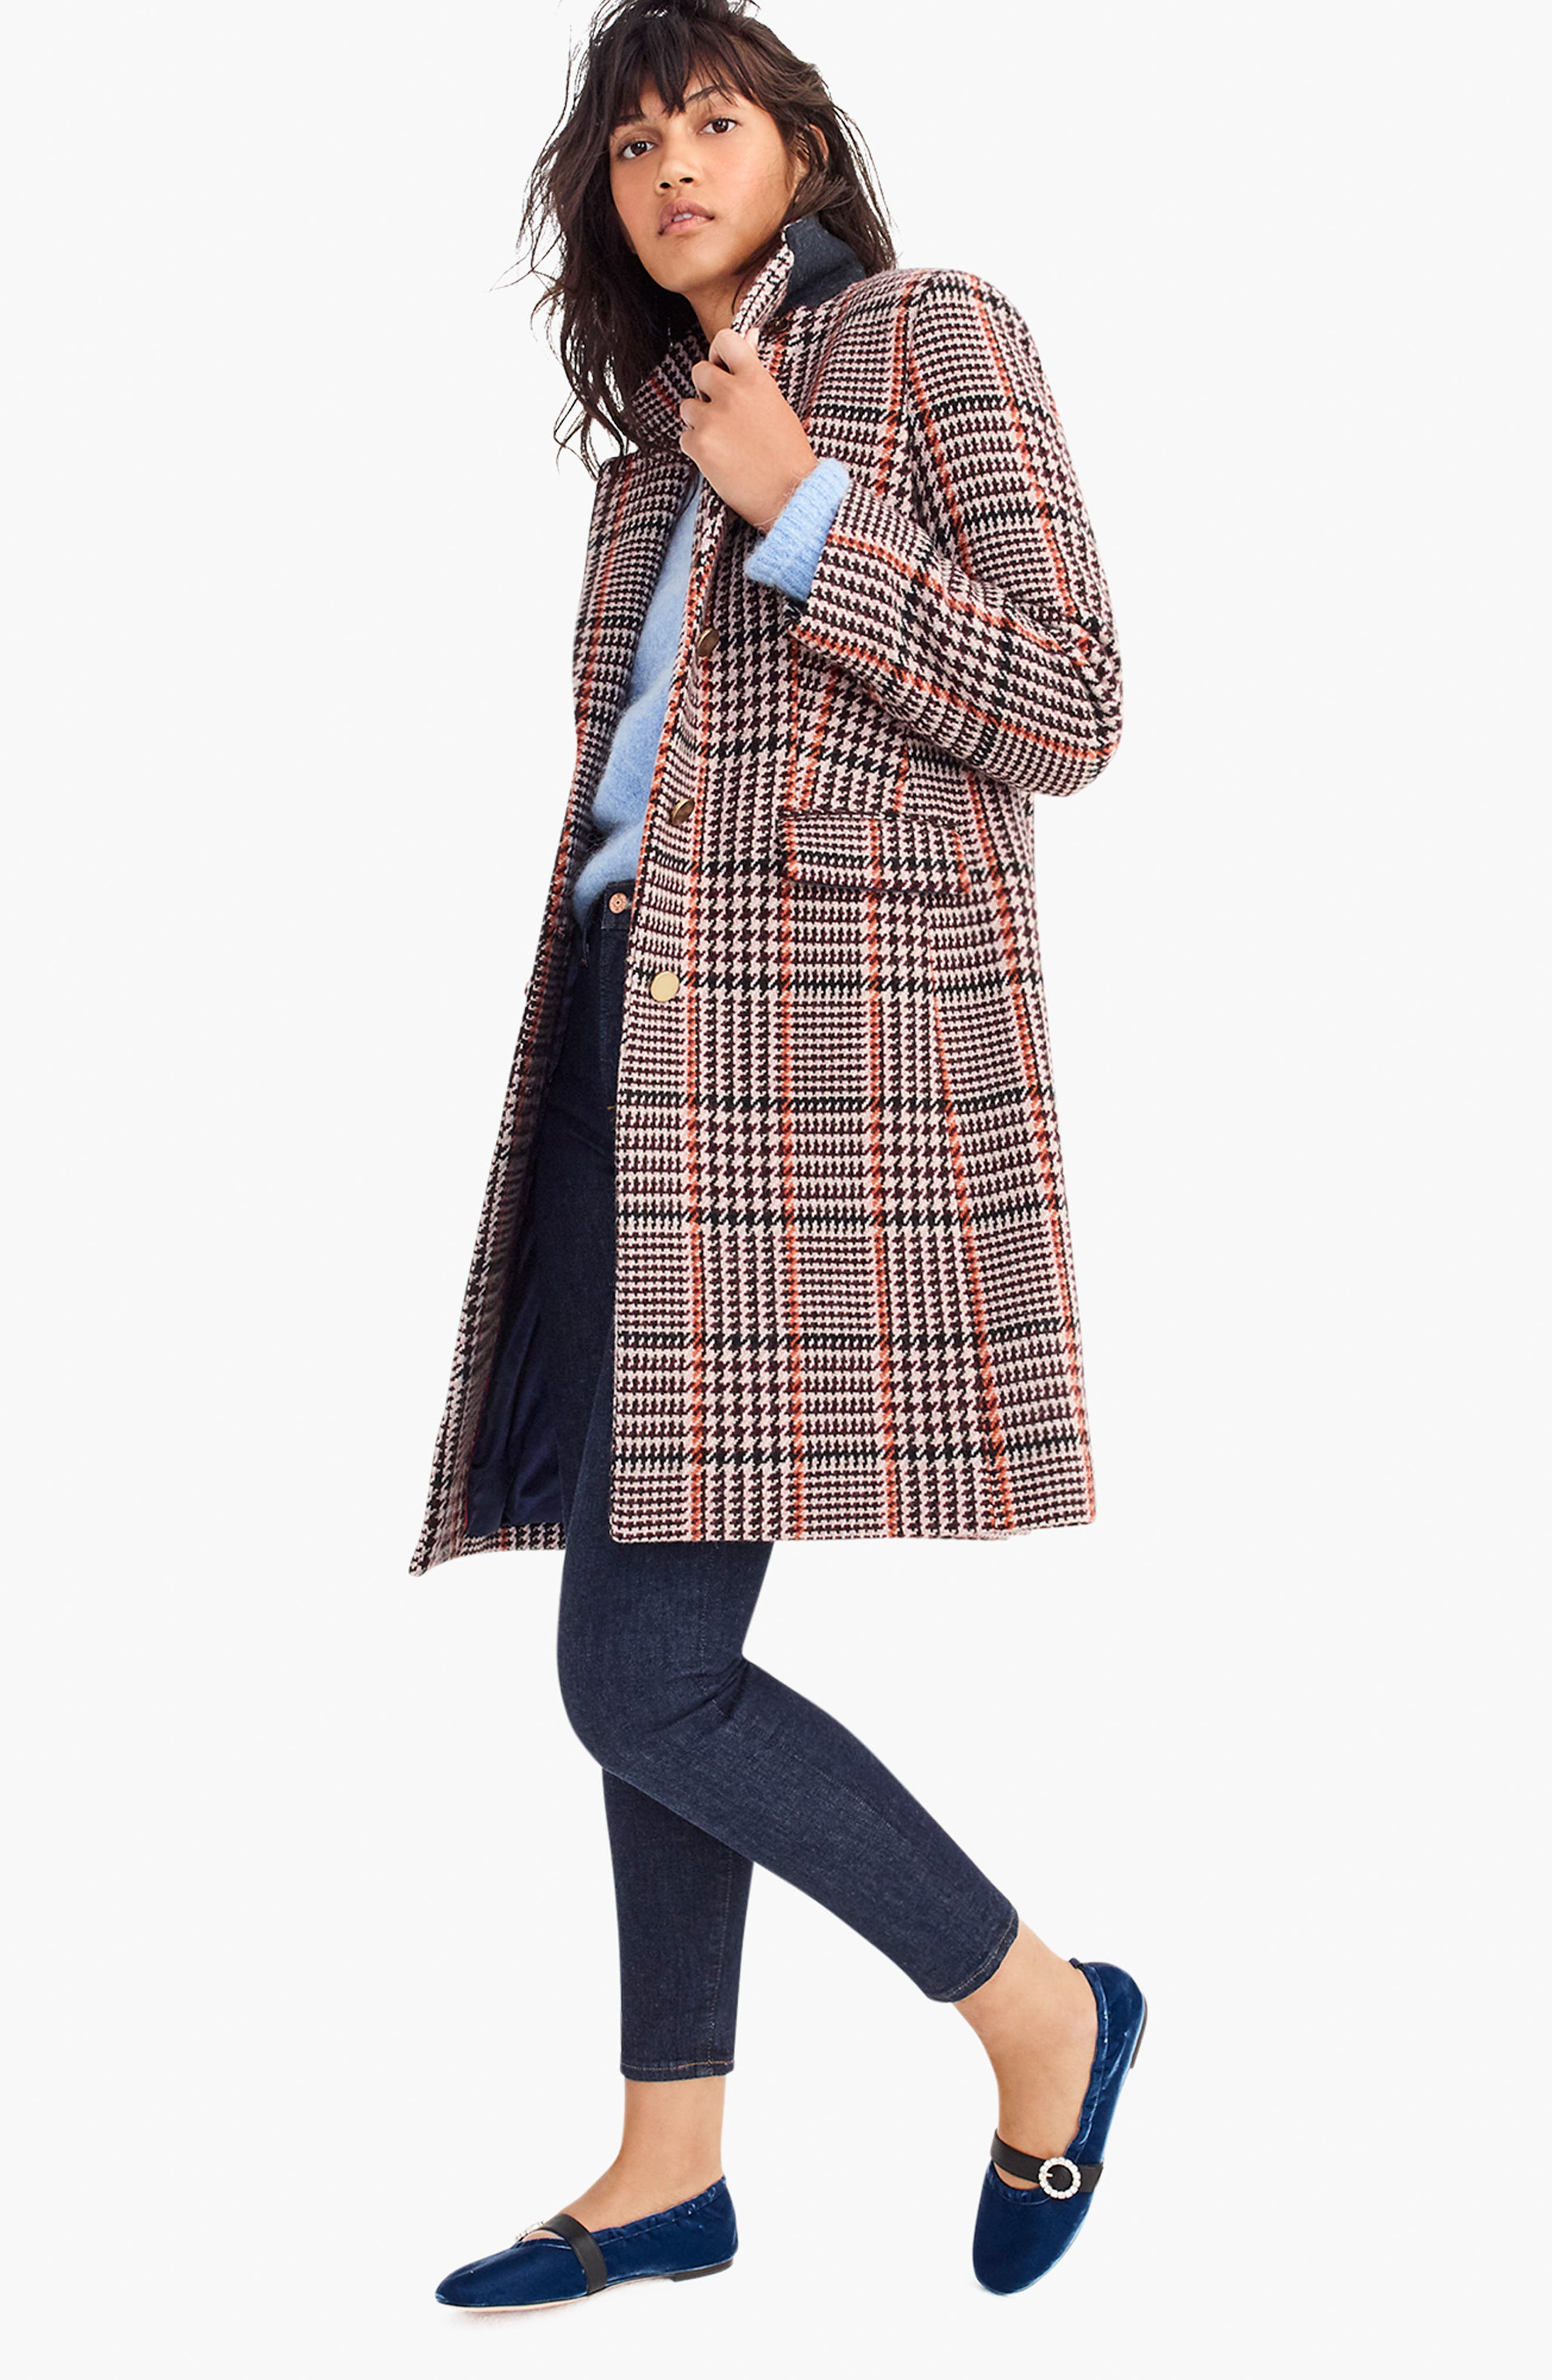 J.CREW, Plaid Single Breasted Topcoat, Alternate thumbnail 7, color, 600